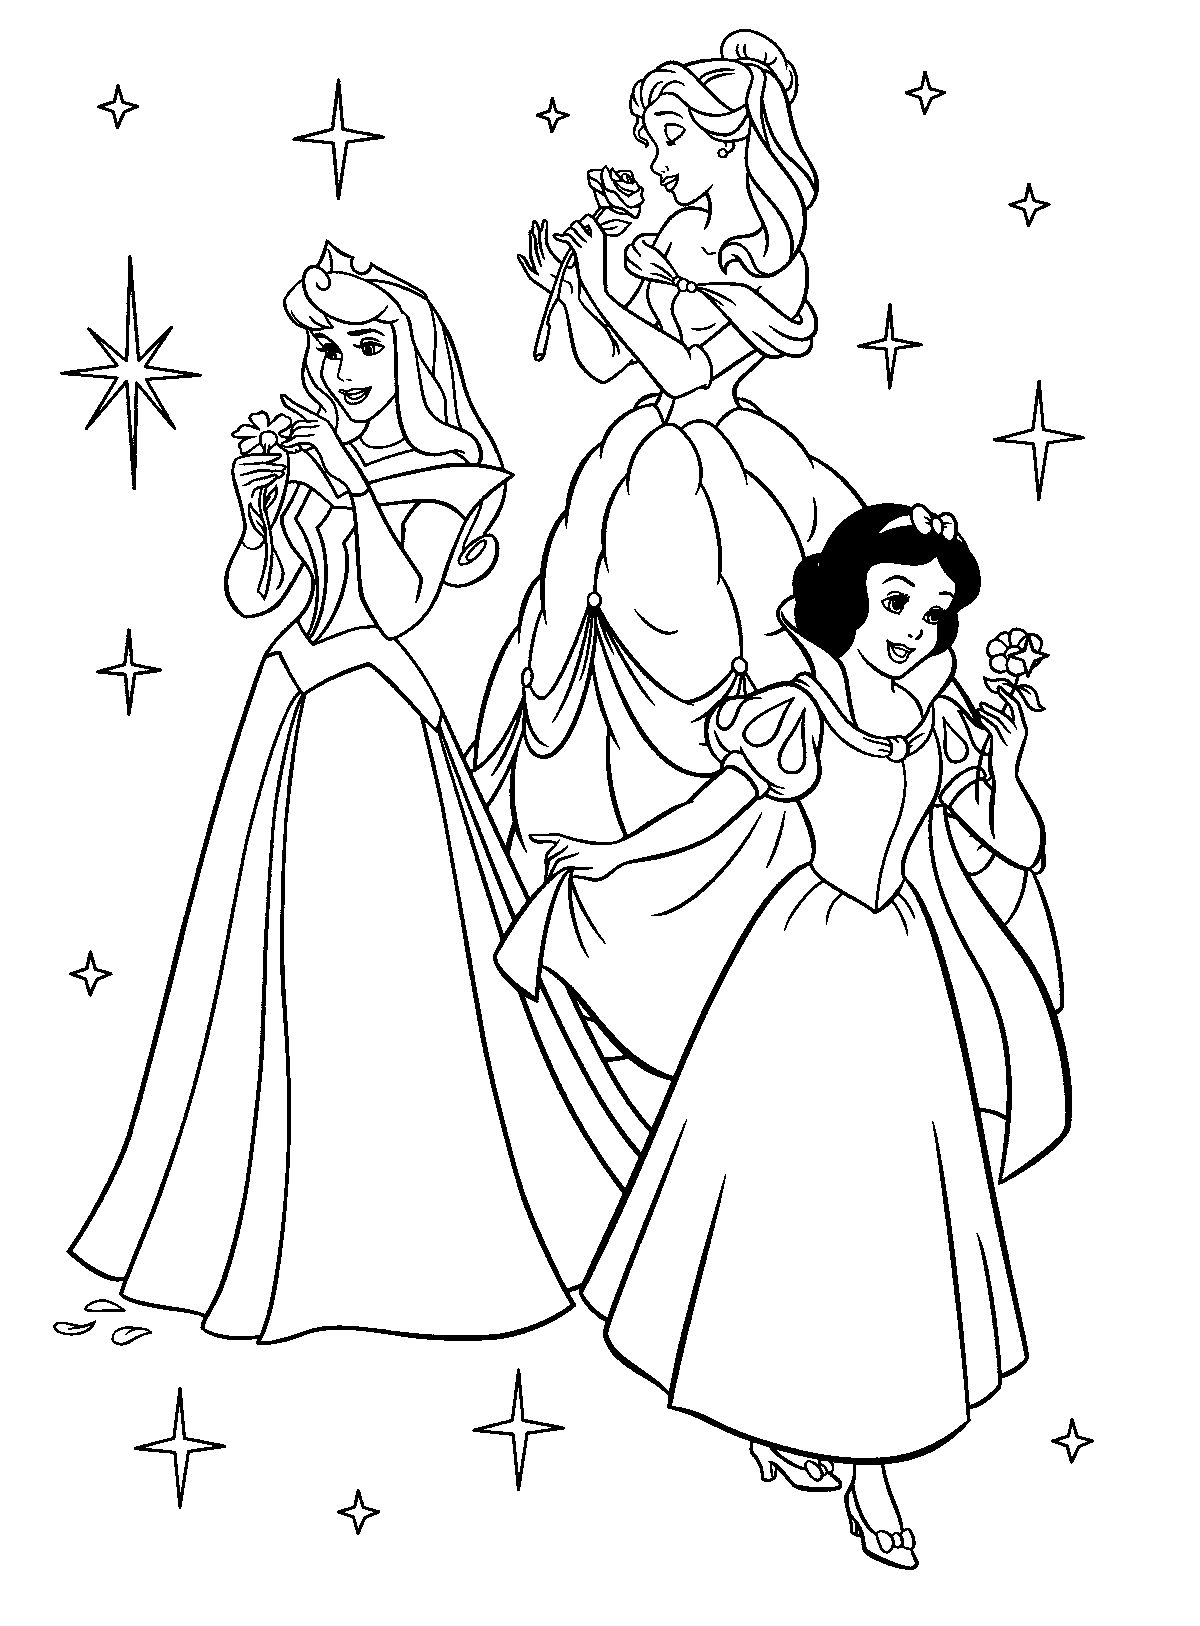 graphic about Disney Princess Printable Coloring Pages named Free of charge Printable Disney Princess Coloring Web pages For Young children